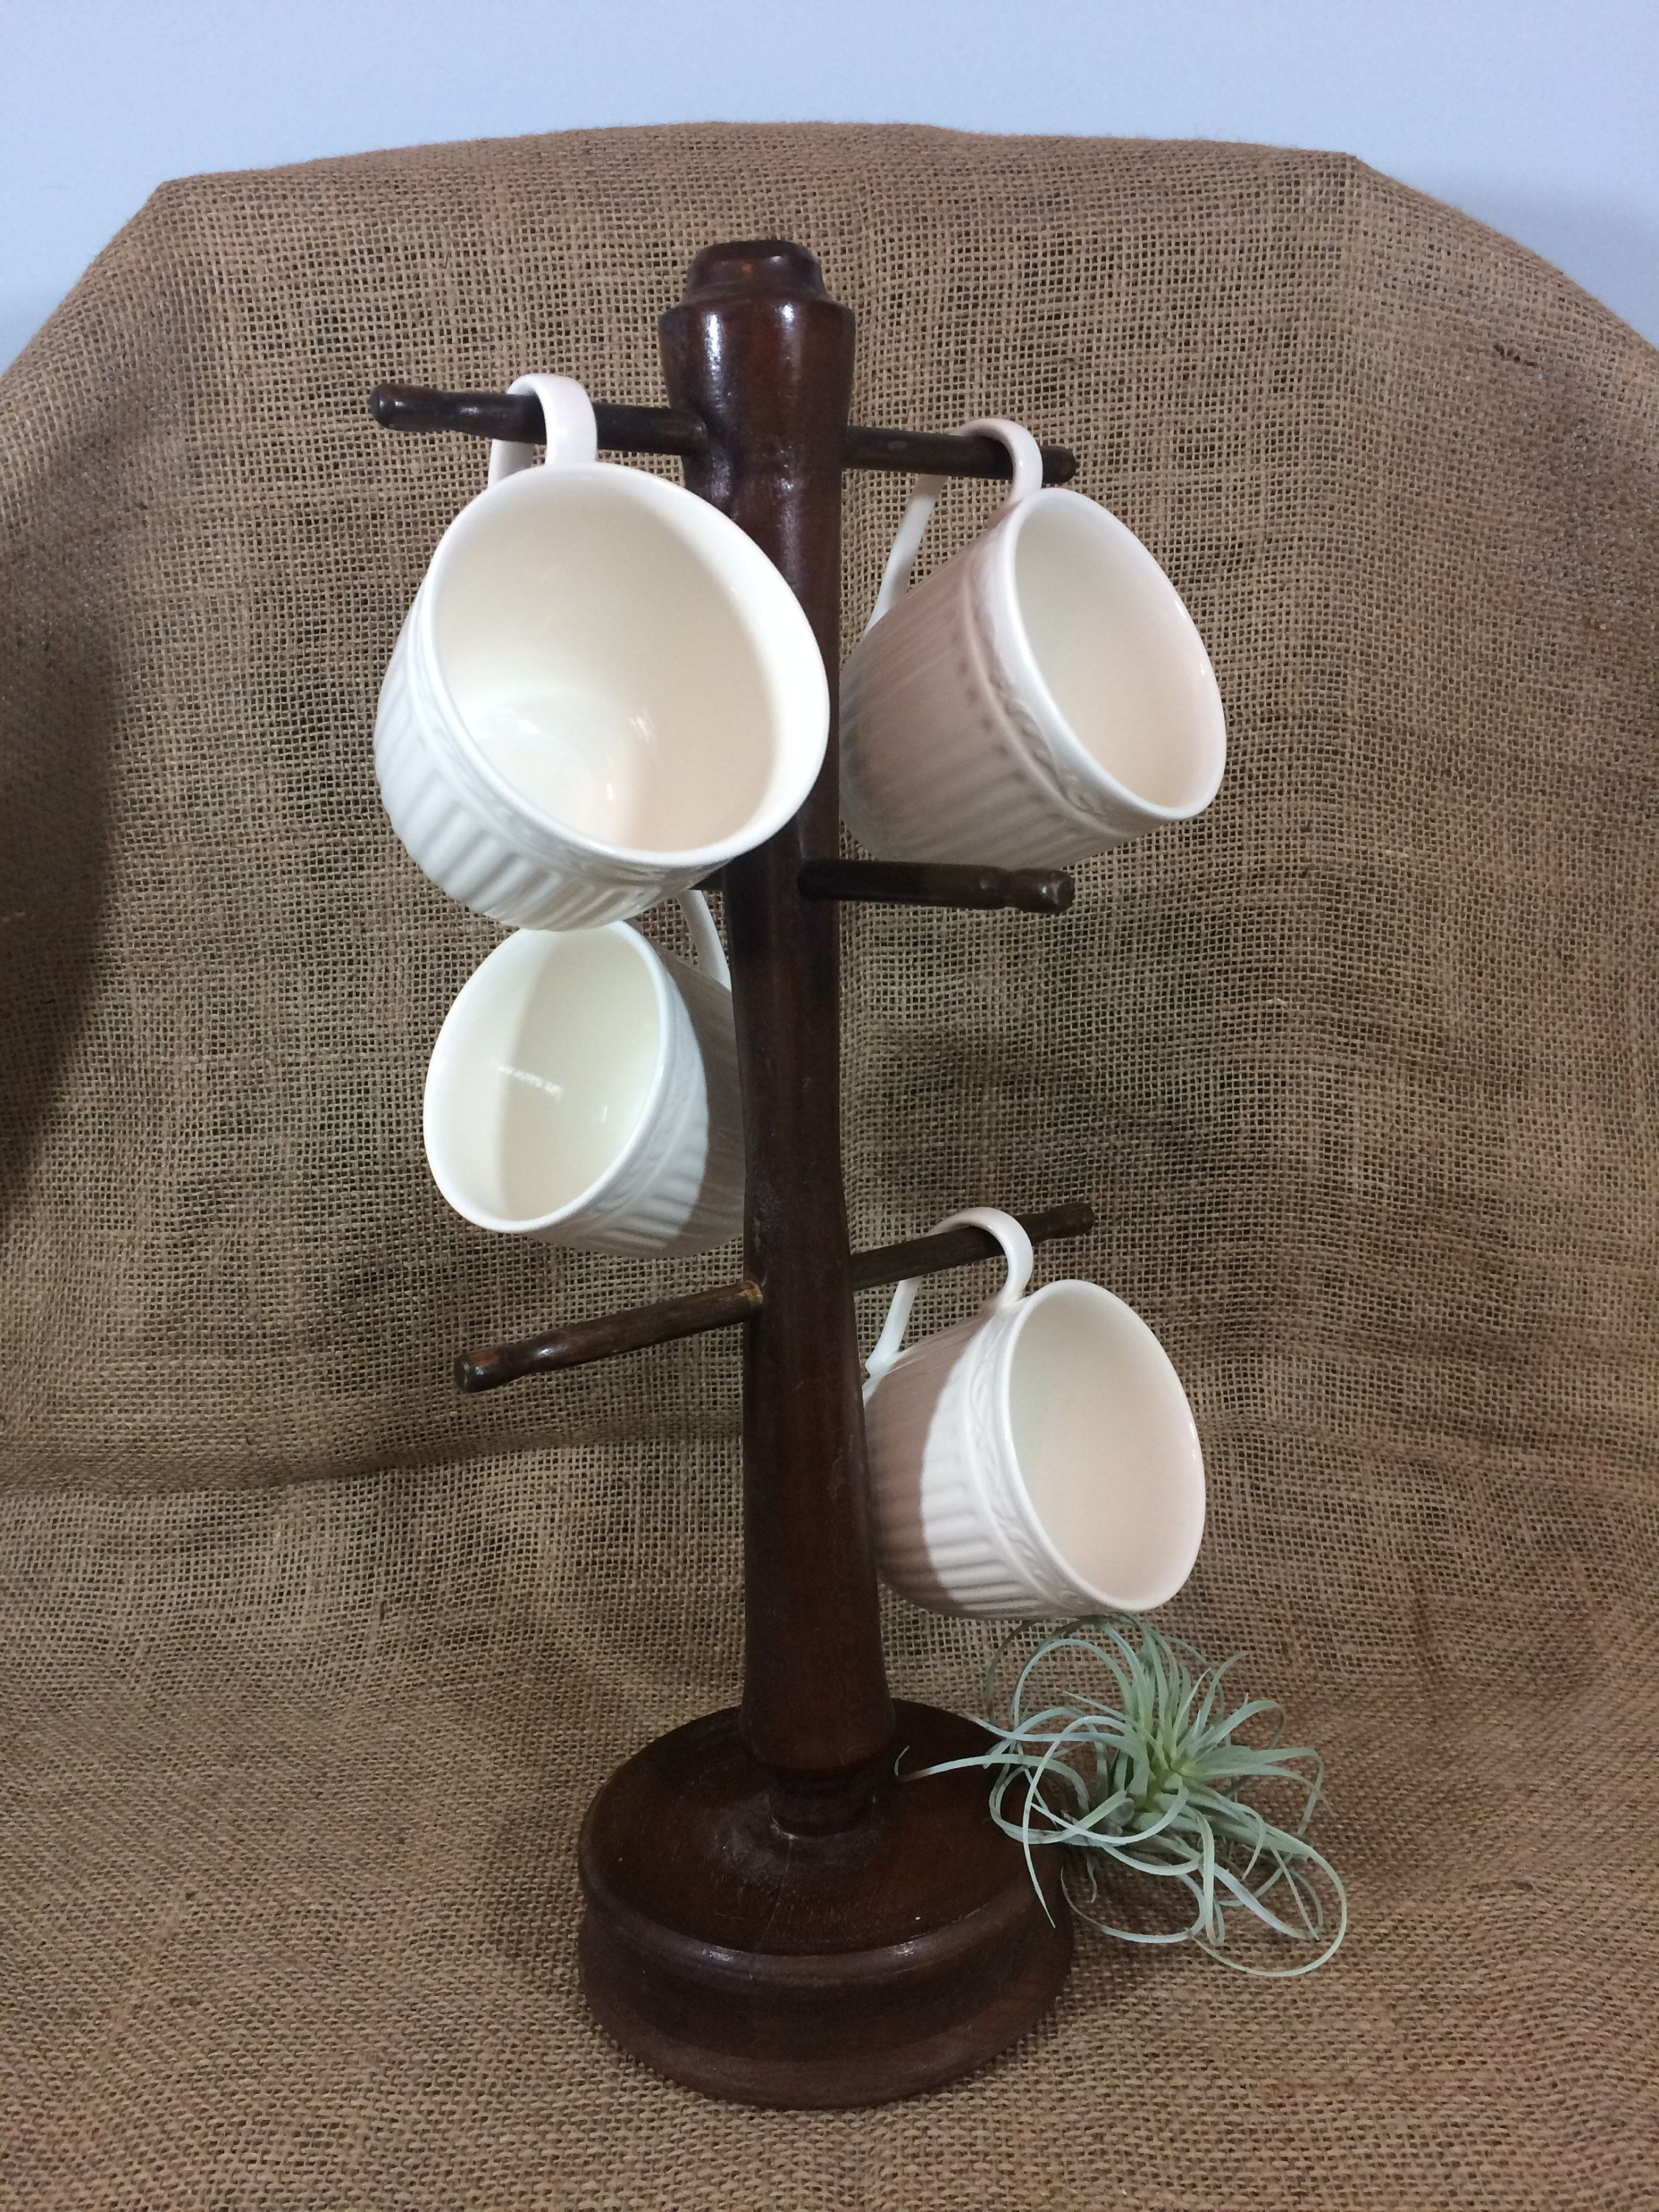 Vintage Mug Rack 1970's Wood Cup Rack/Holder